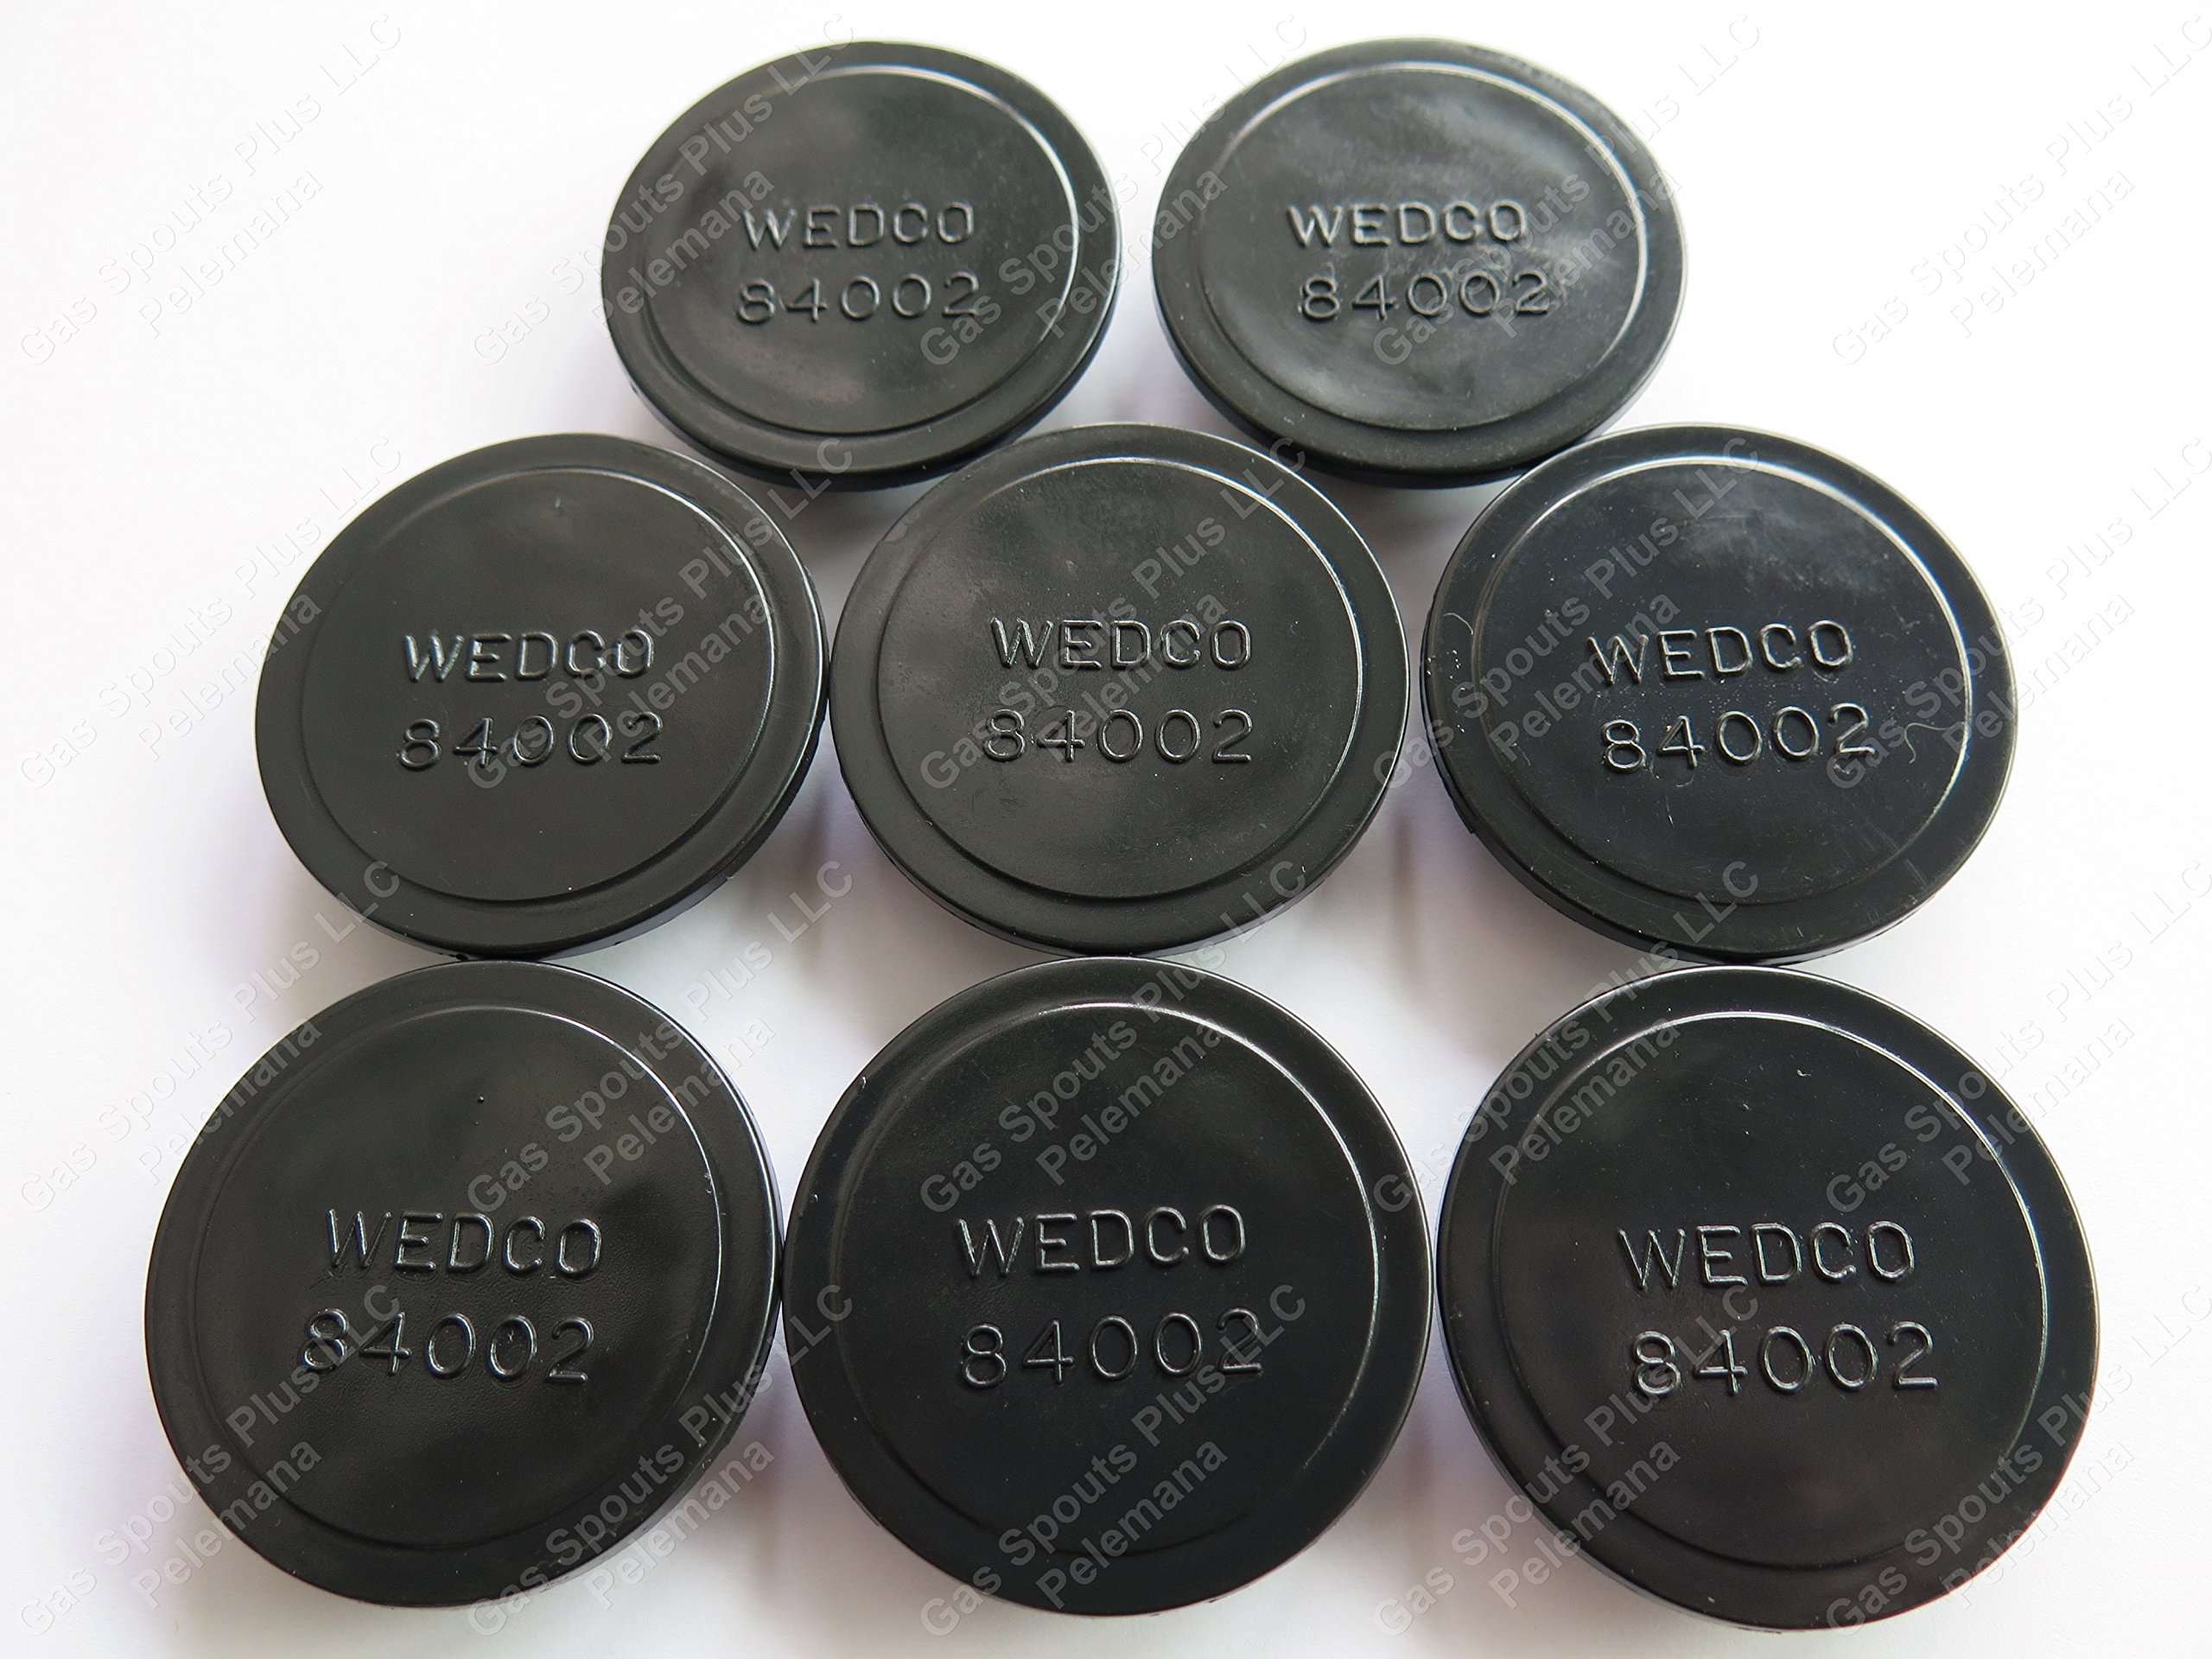 8-Pack WEDCO Seal Stopper Discs 84002 AUTHENTIC GENUINE BRIGGS & STRATTON REPLACEMENT PART - Hard to Find - ''FIX YOUR CAN'' Gas, Kerosene, Diesel Gallon Jugs for Storage & Transportation Stopper Discs